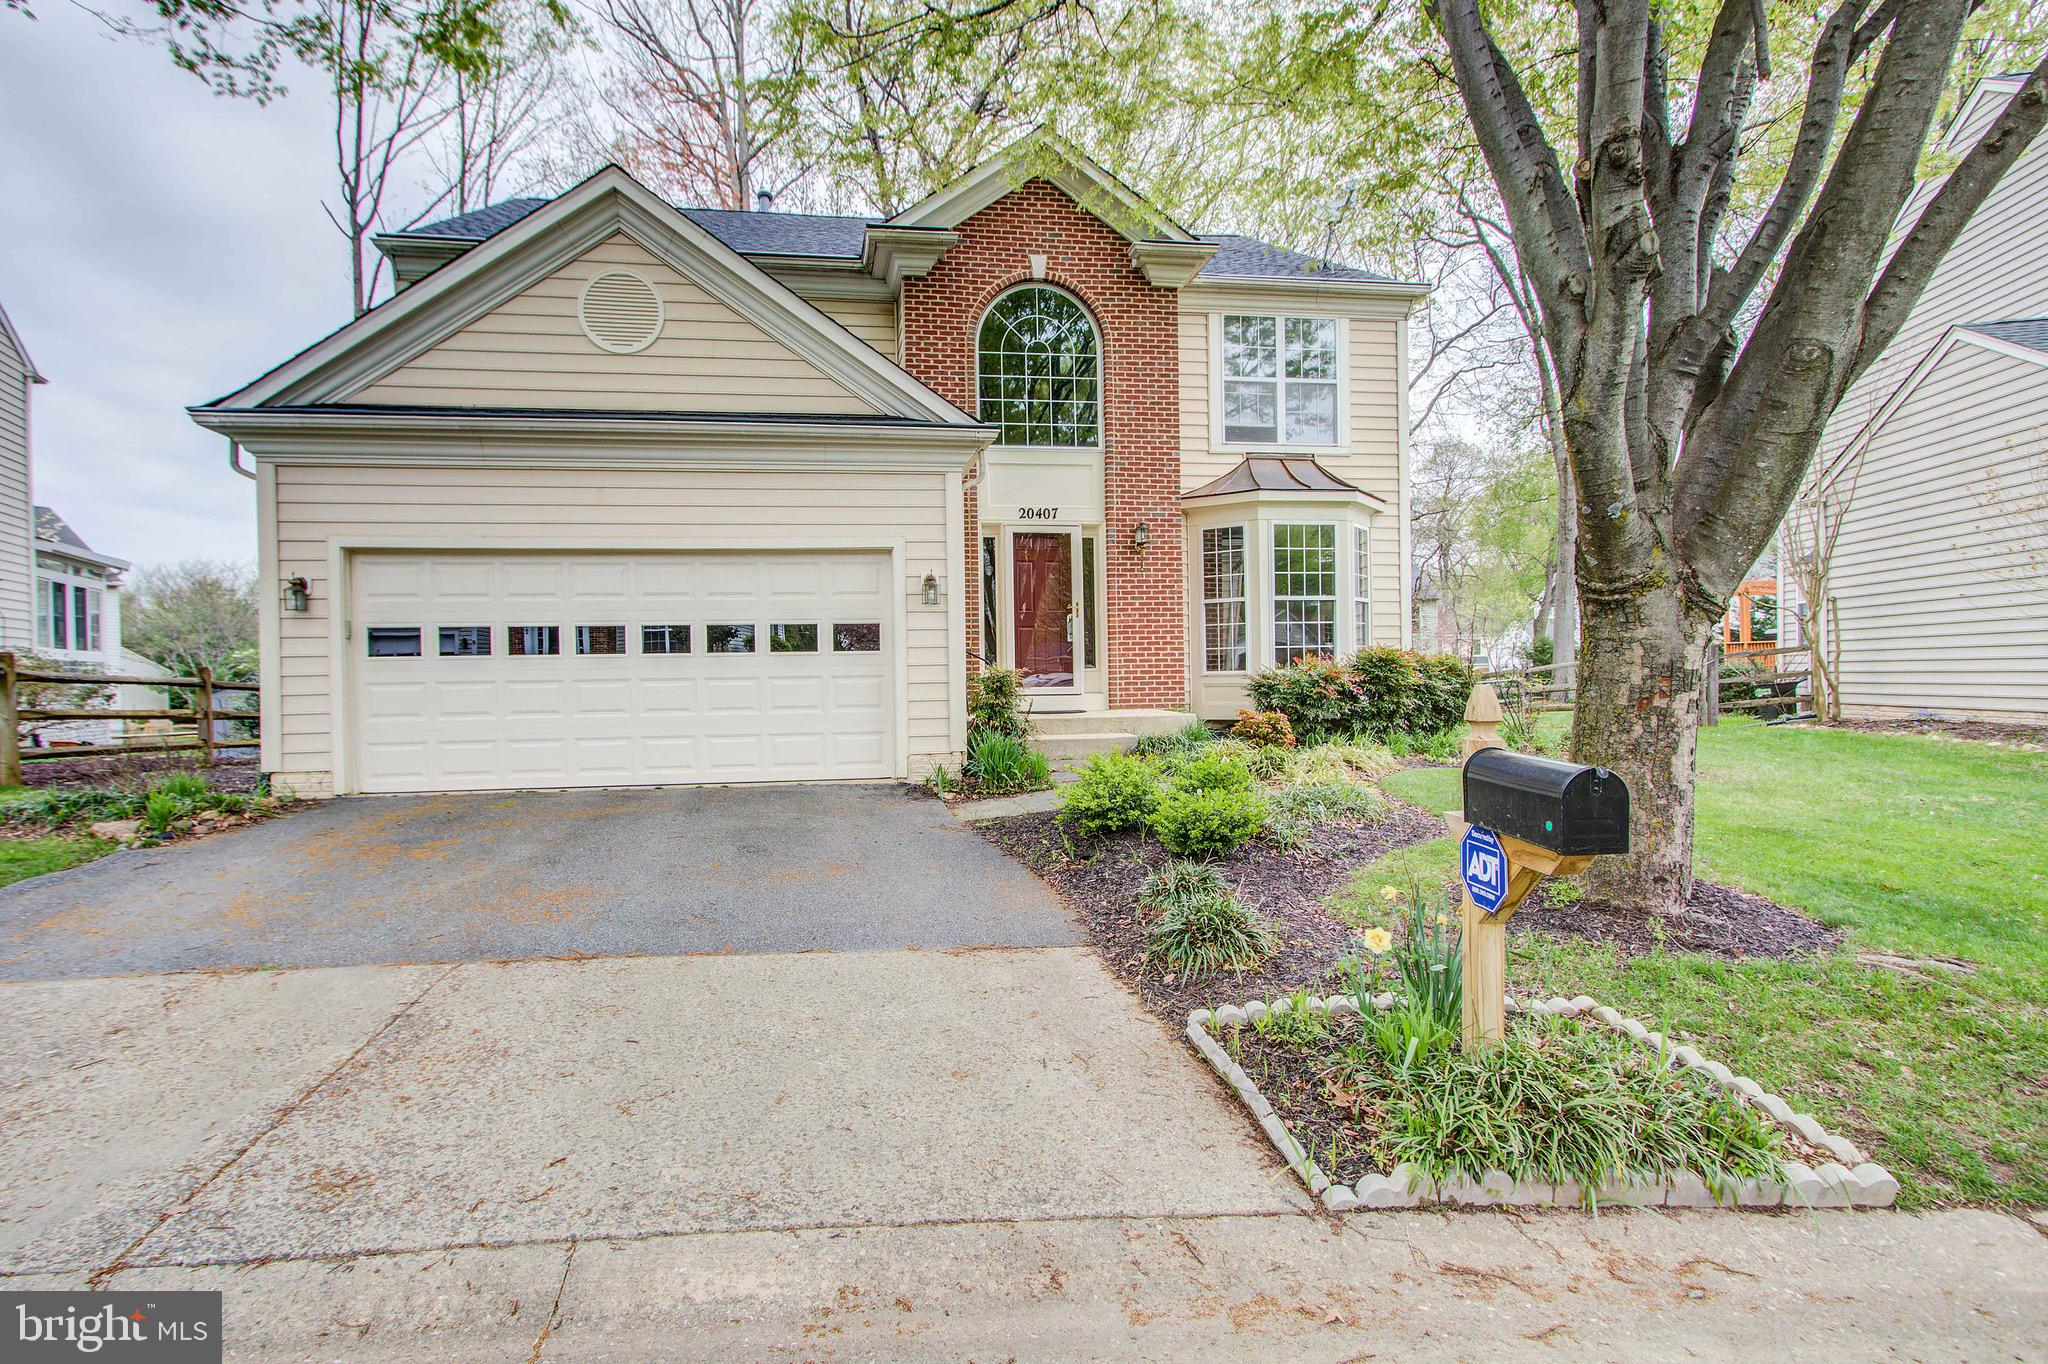 20407 HERITAGE FARM TERRACE, GAITHERSBURG, Maryland 20886, 4 Bedrooms Bedrooms, ,4 BathroomsBathrooms,Single Family,For Sale,20407 HERITAGE FARM TERRACE,MDMC752944